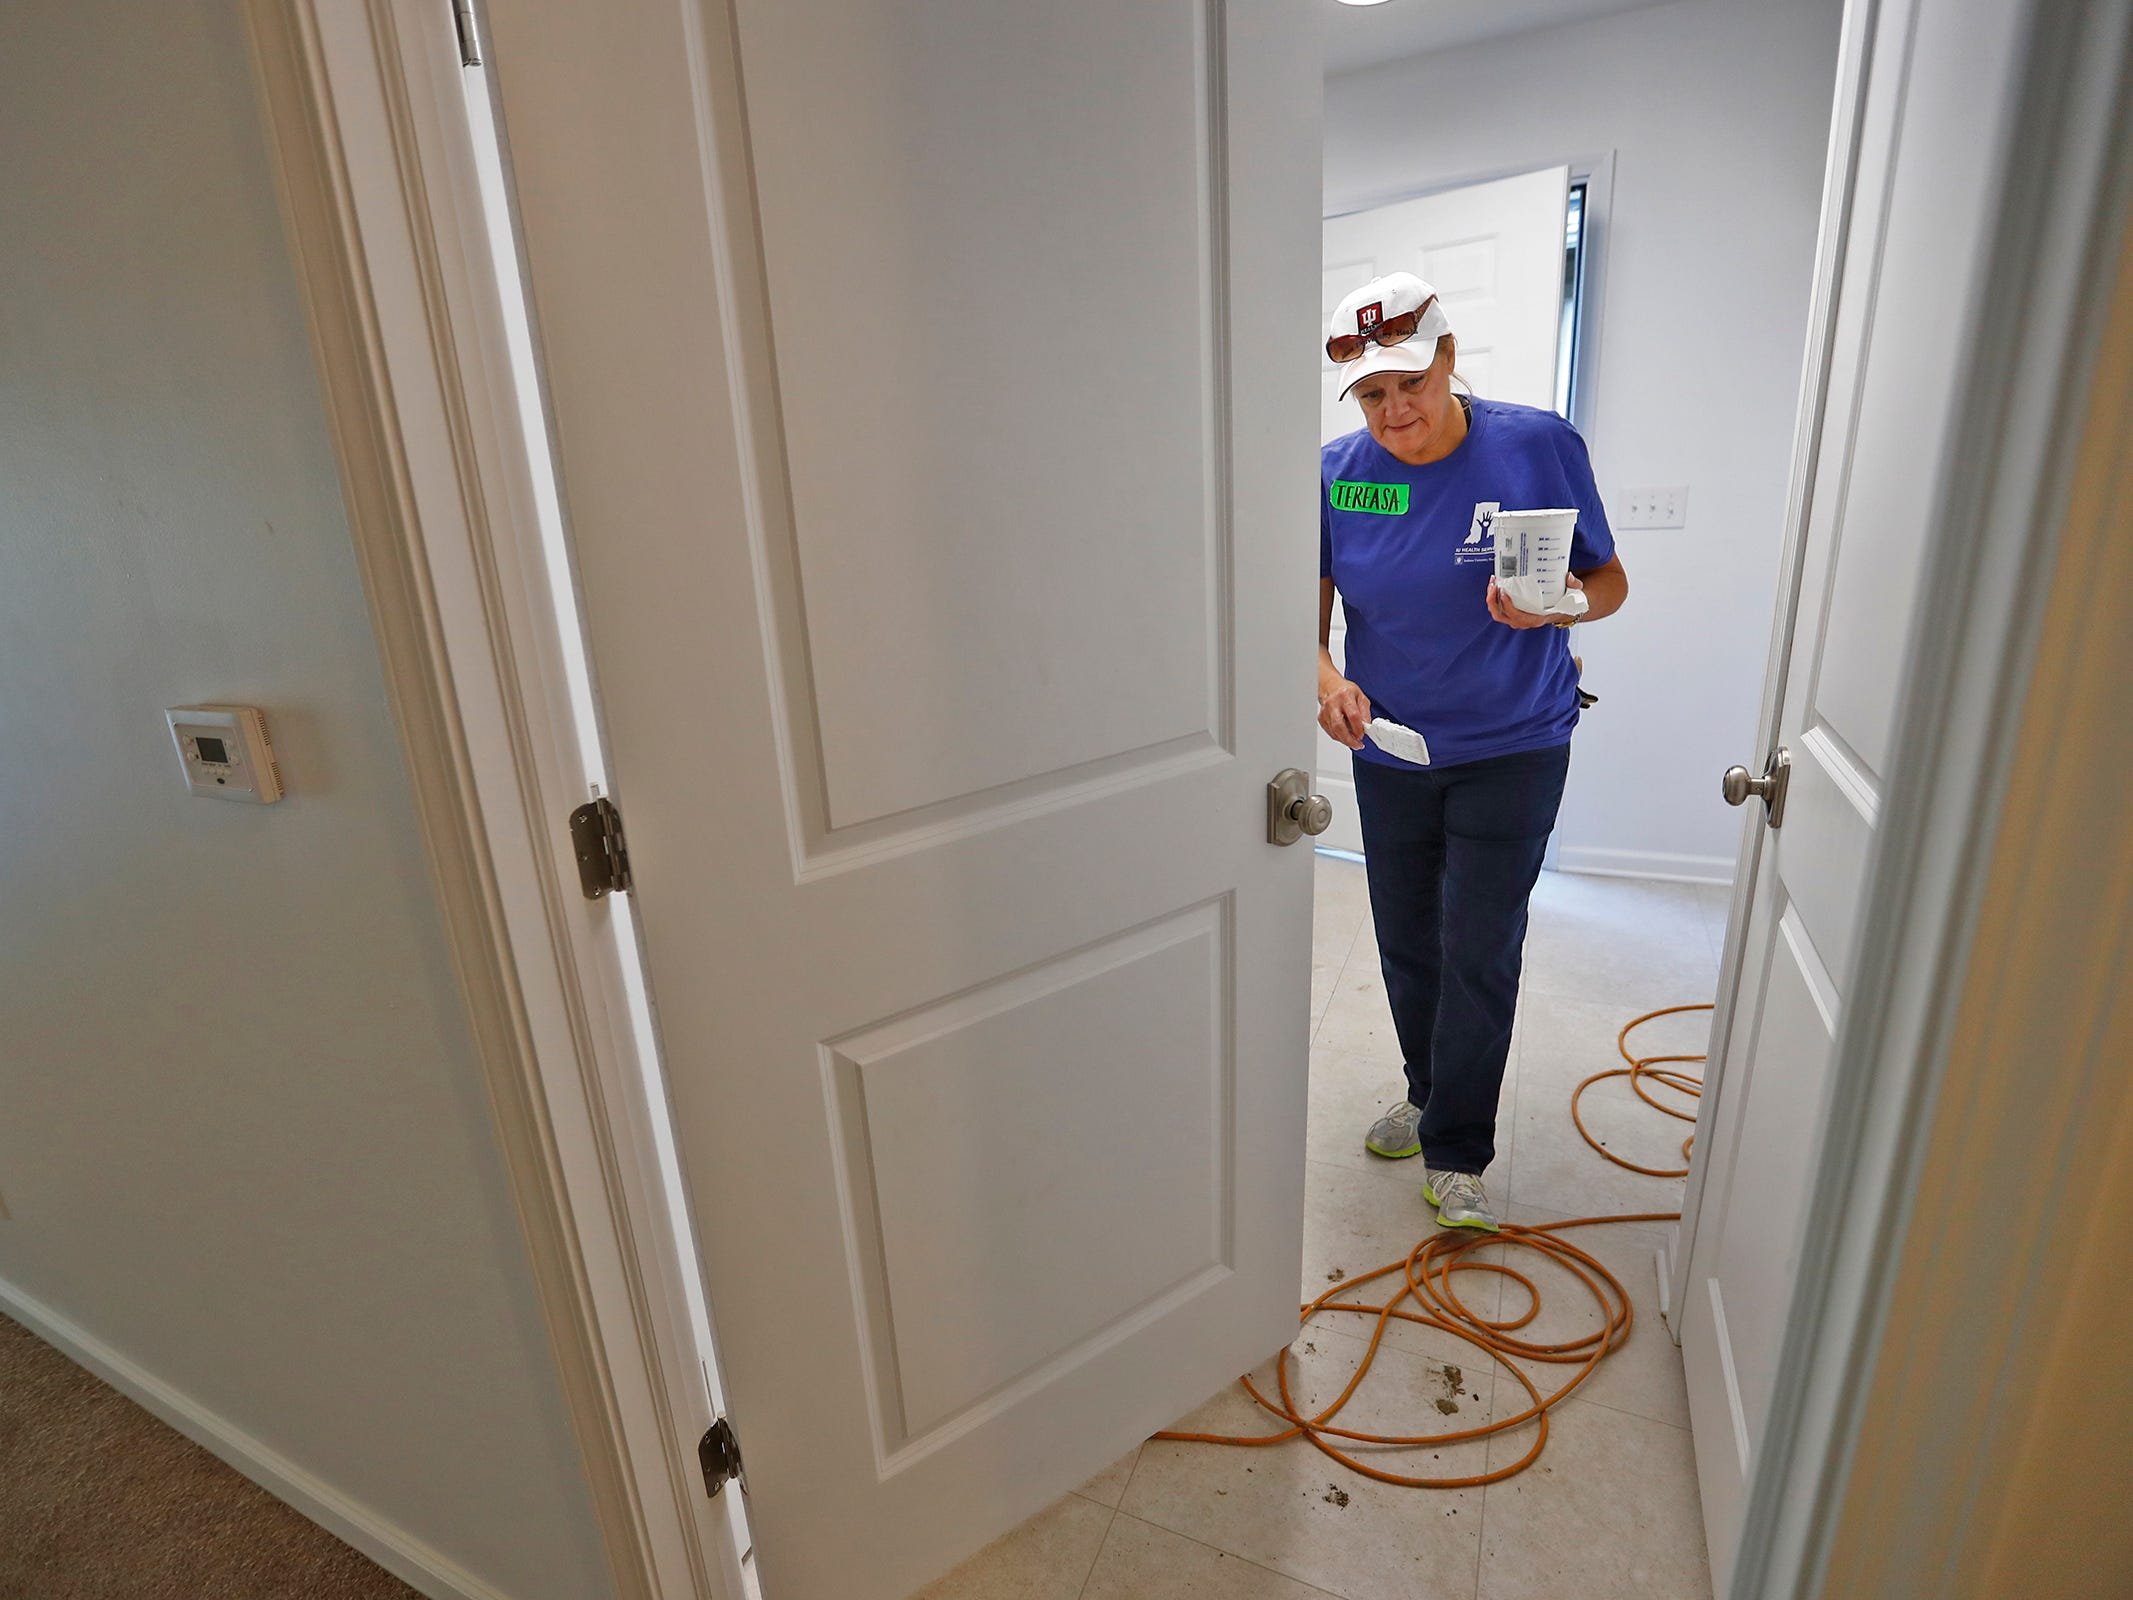 Tereasa Gillentine checks for spots to retouch with paint in a home, during the 10th Annual IU Health Day of Service, Friday, Sept. 13, 2018.  IU Health team members donated time and effort building and finishing a Habitat for Humanity home in the 3700 block of Kenwood Ave. For 22 days, with partner volunteers, over 250 members of the IU Health team have donated more than 1680 hours at the house that will become the new home for the Ndatira family.